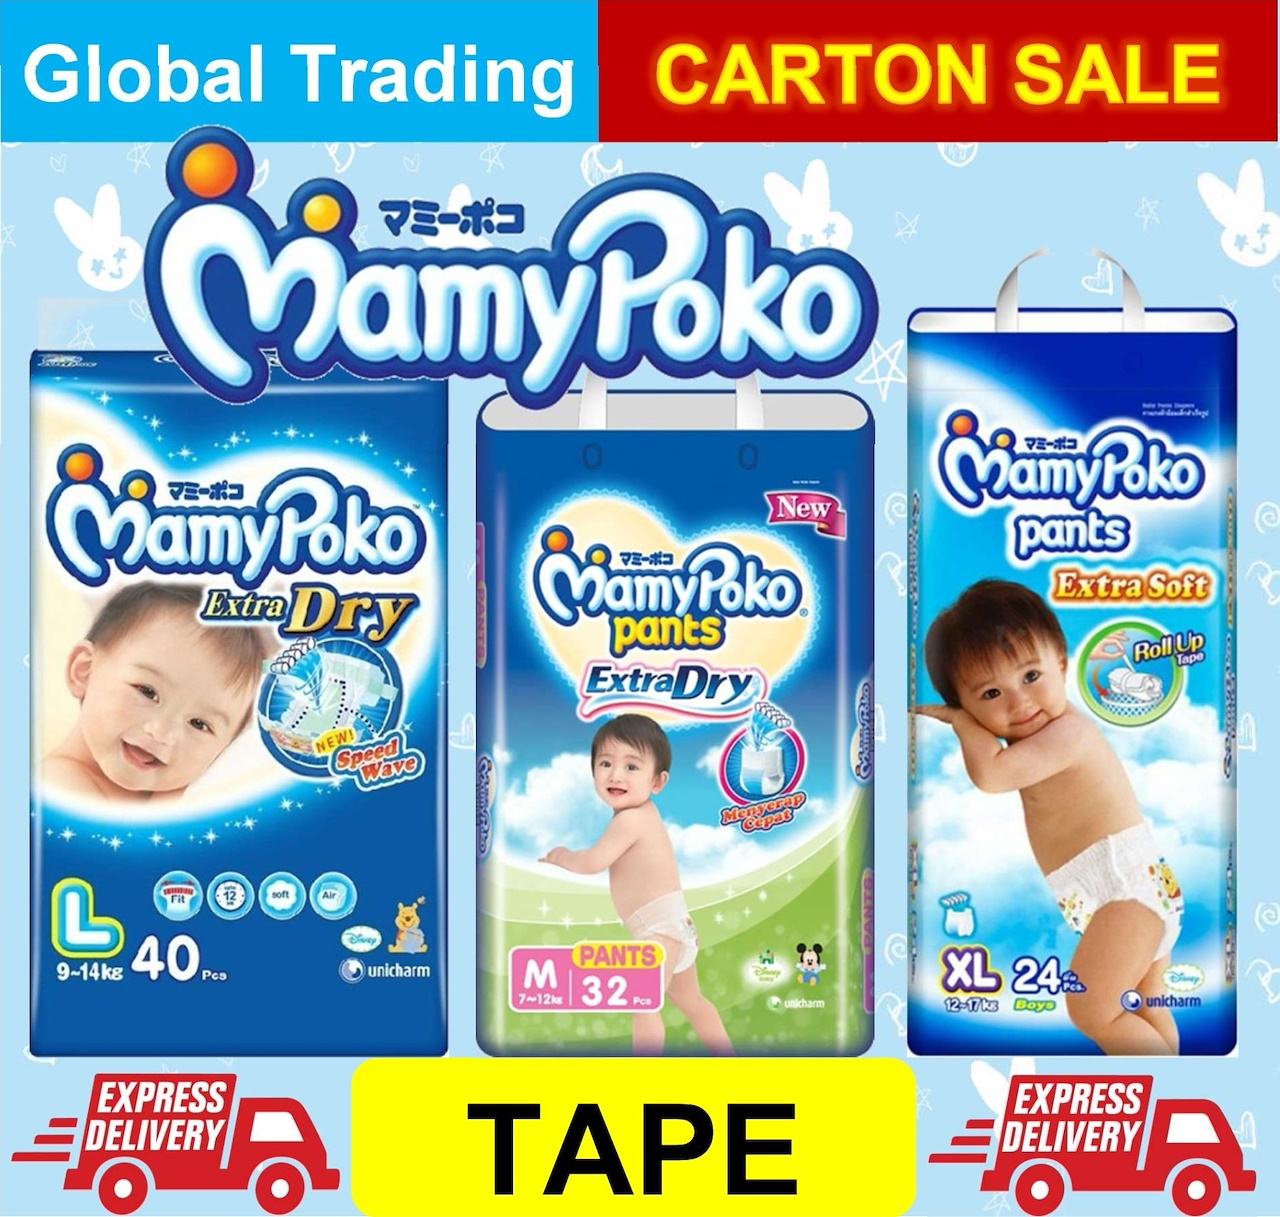 Buy Fast Delivery Extra Dry Soft Junior Standard Pants Mamypoko Boys Xl 24 Highlights